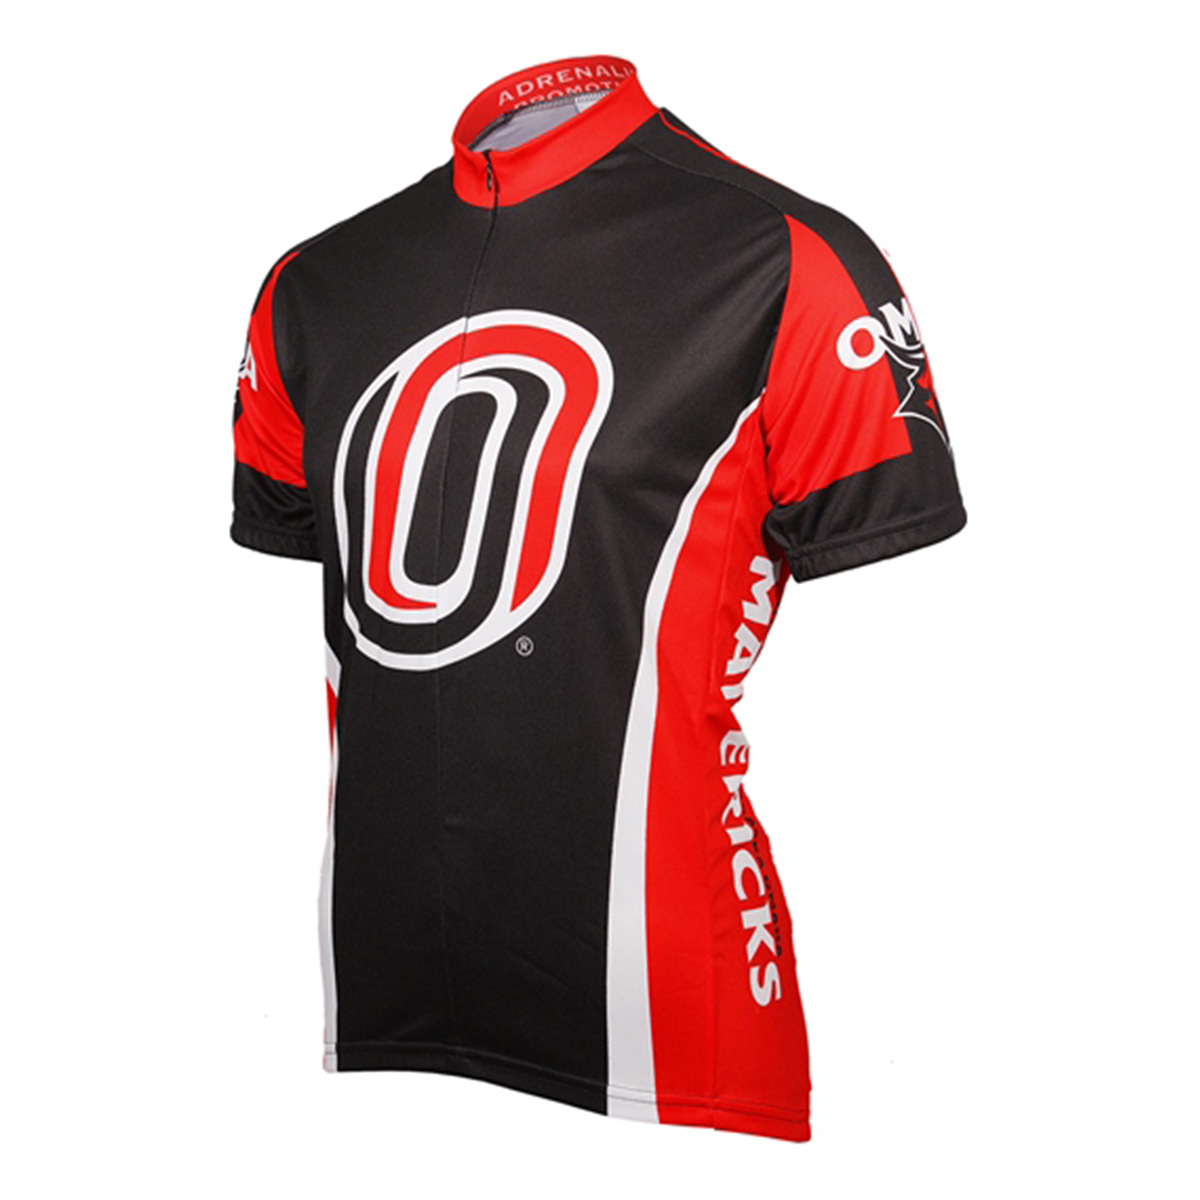 Adrenaline Promotions University of Nebraska Omaha Uno Cycling Jersey